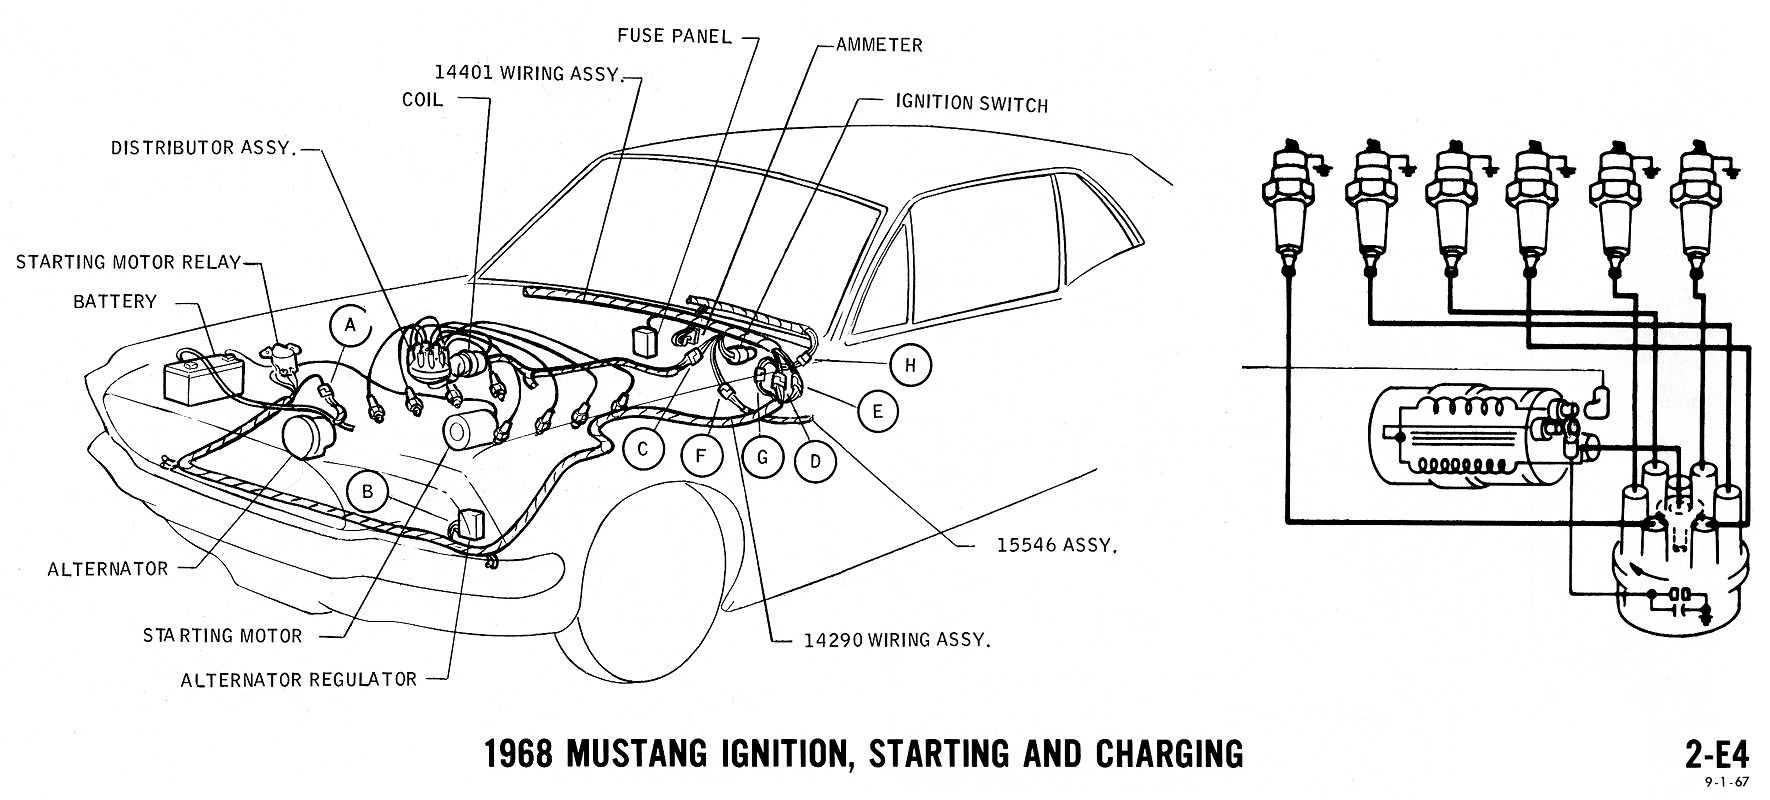 E4 1968 mustang wiring diagrams evolving software 1969 mustang color wiring diagram at panicattacktreatment.co